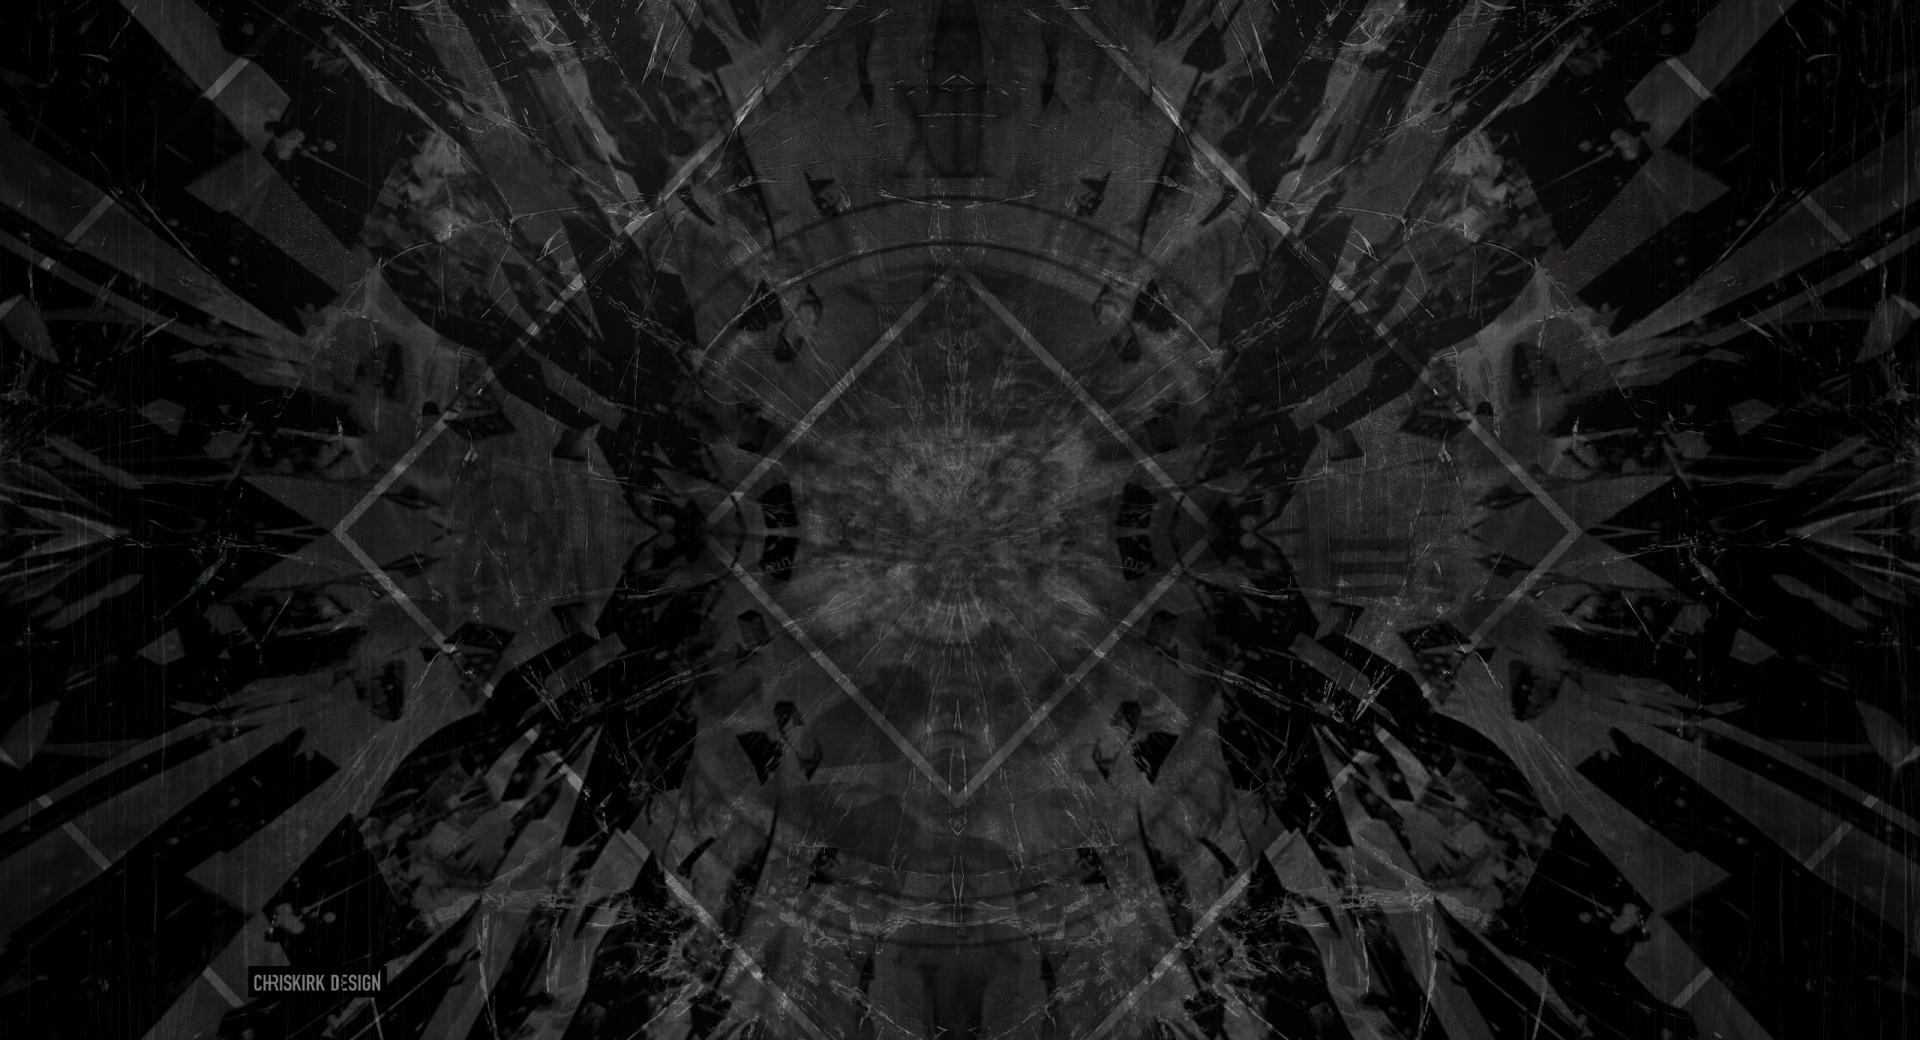 Abstract Black and White Design wallpapers HD quality